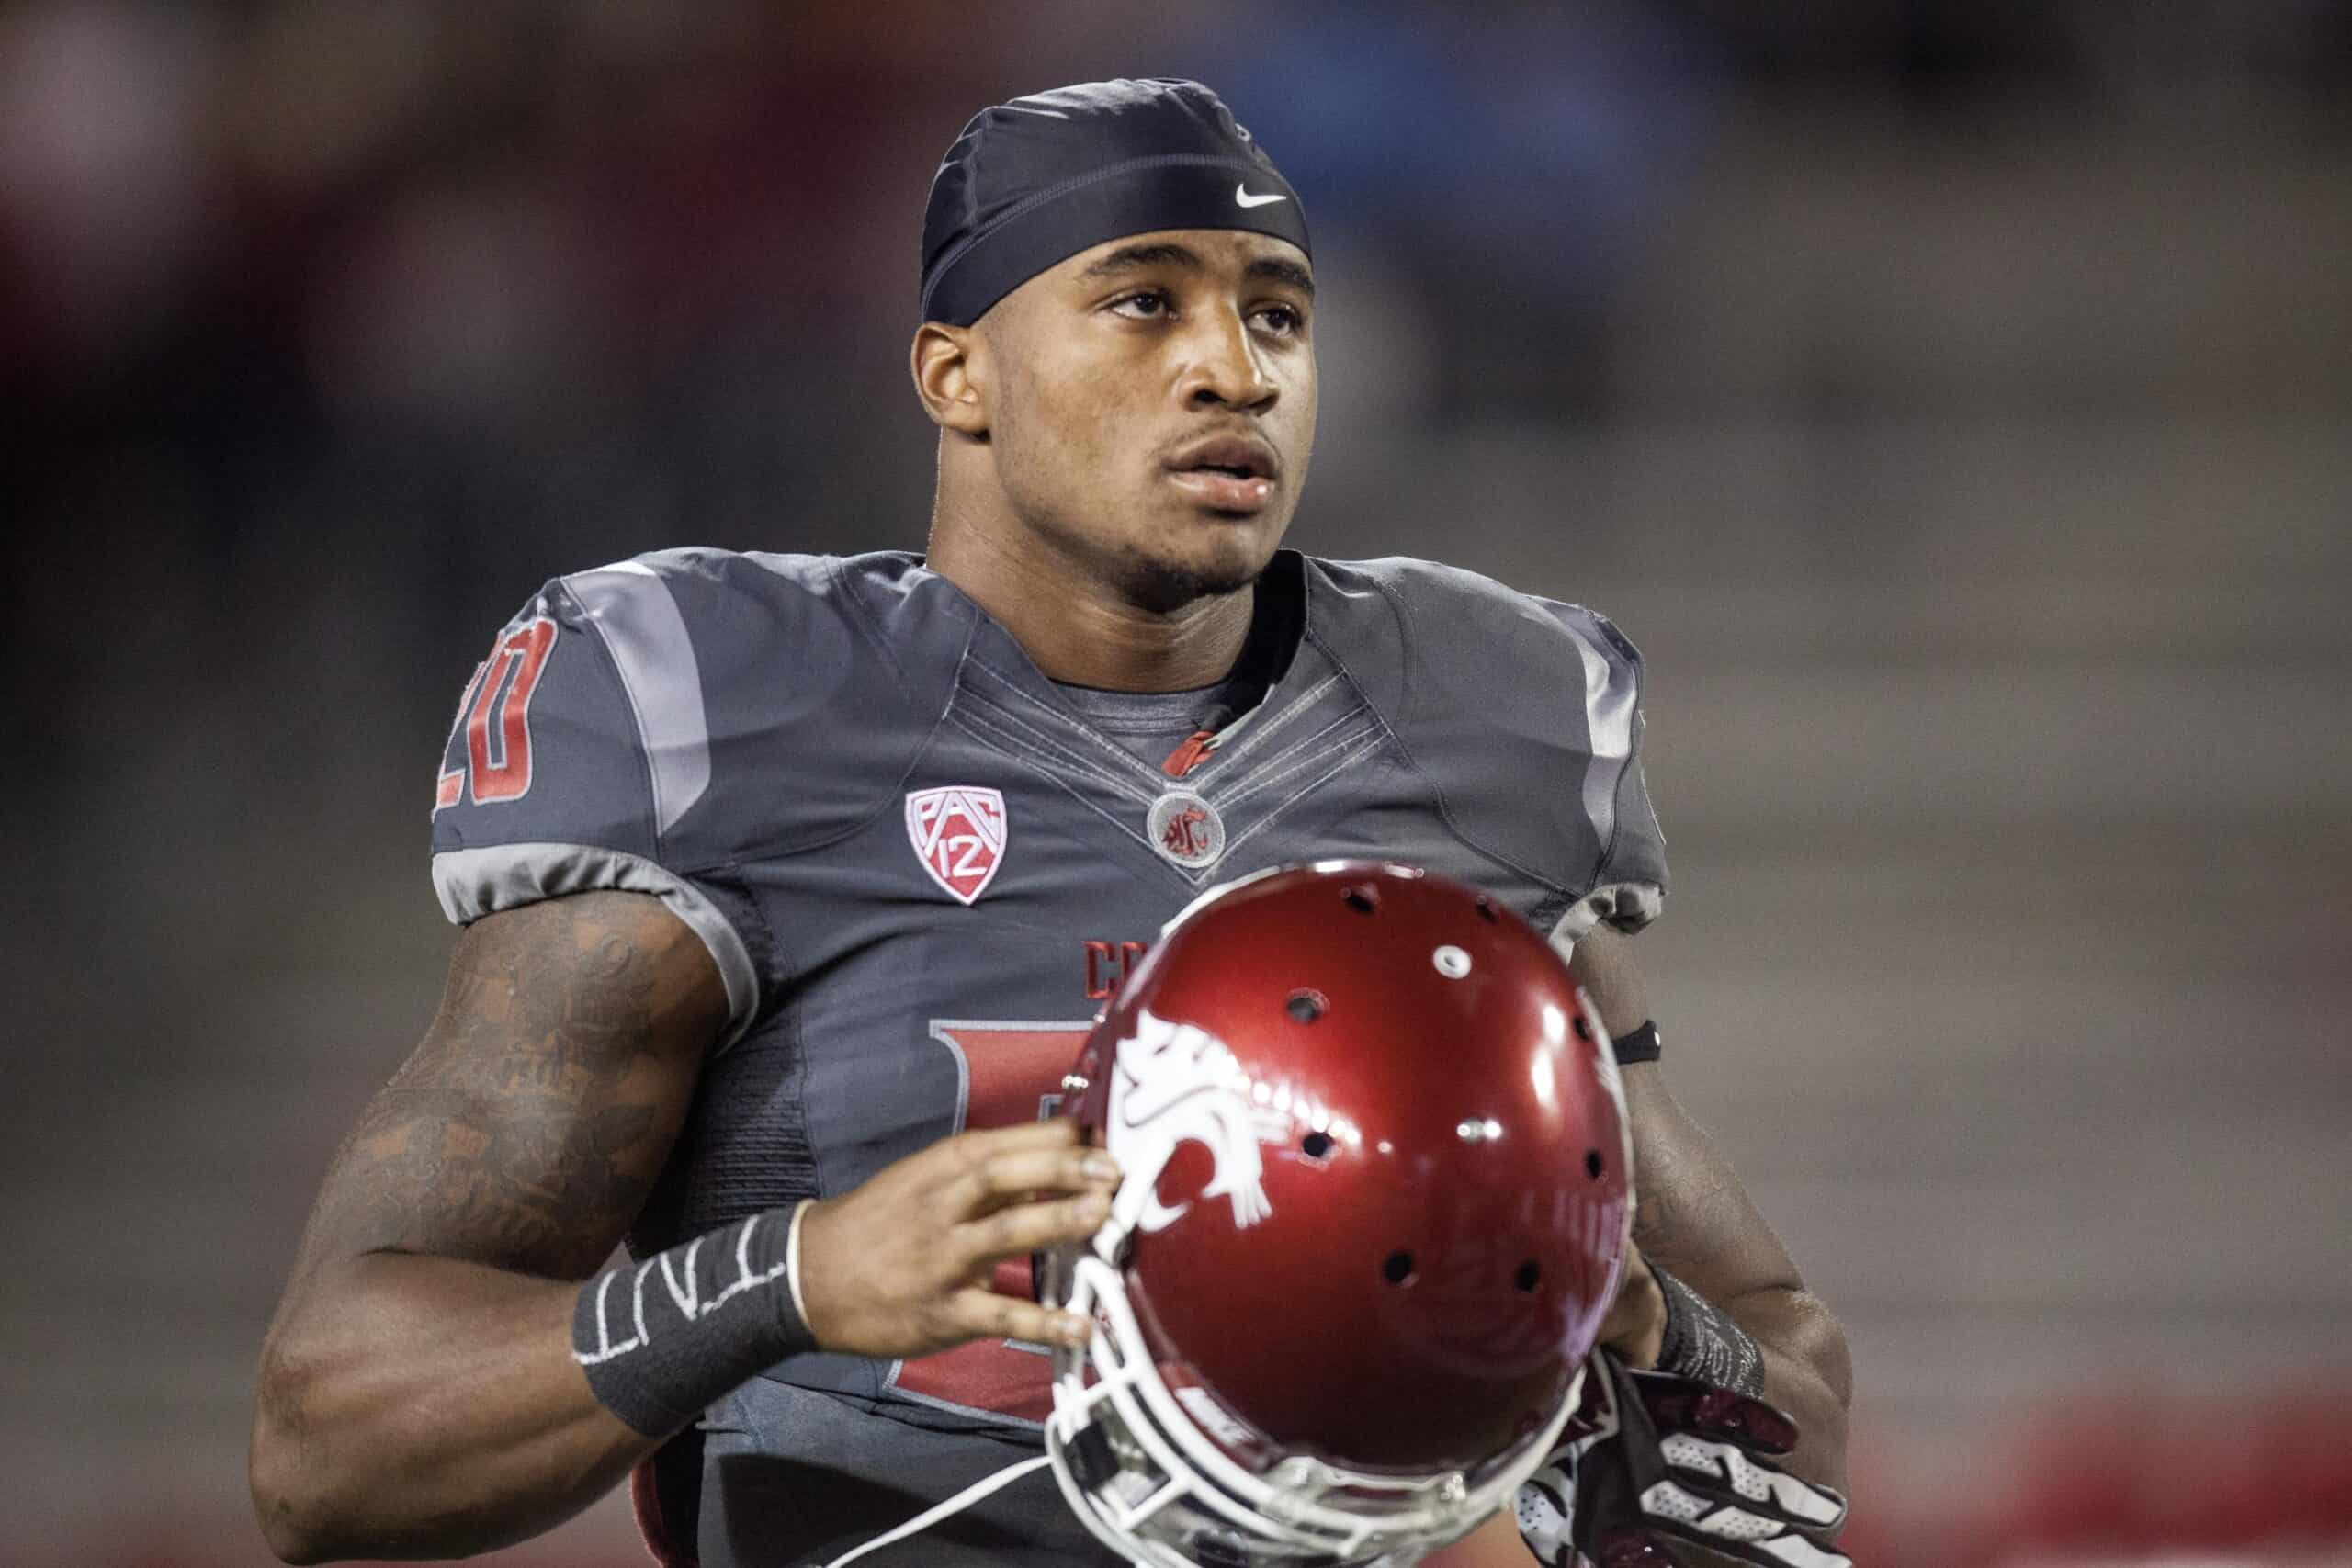 Deone Bucannon Playing For Washington State University